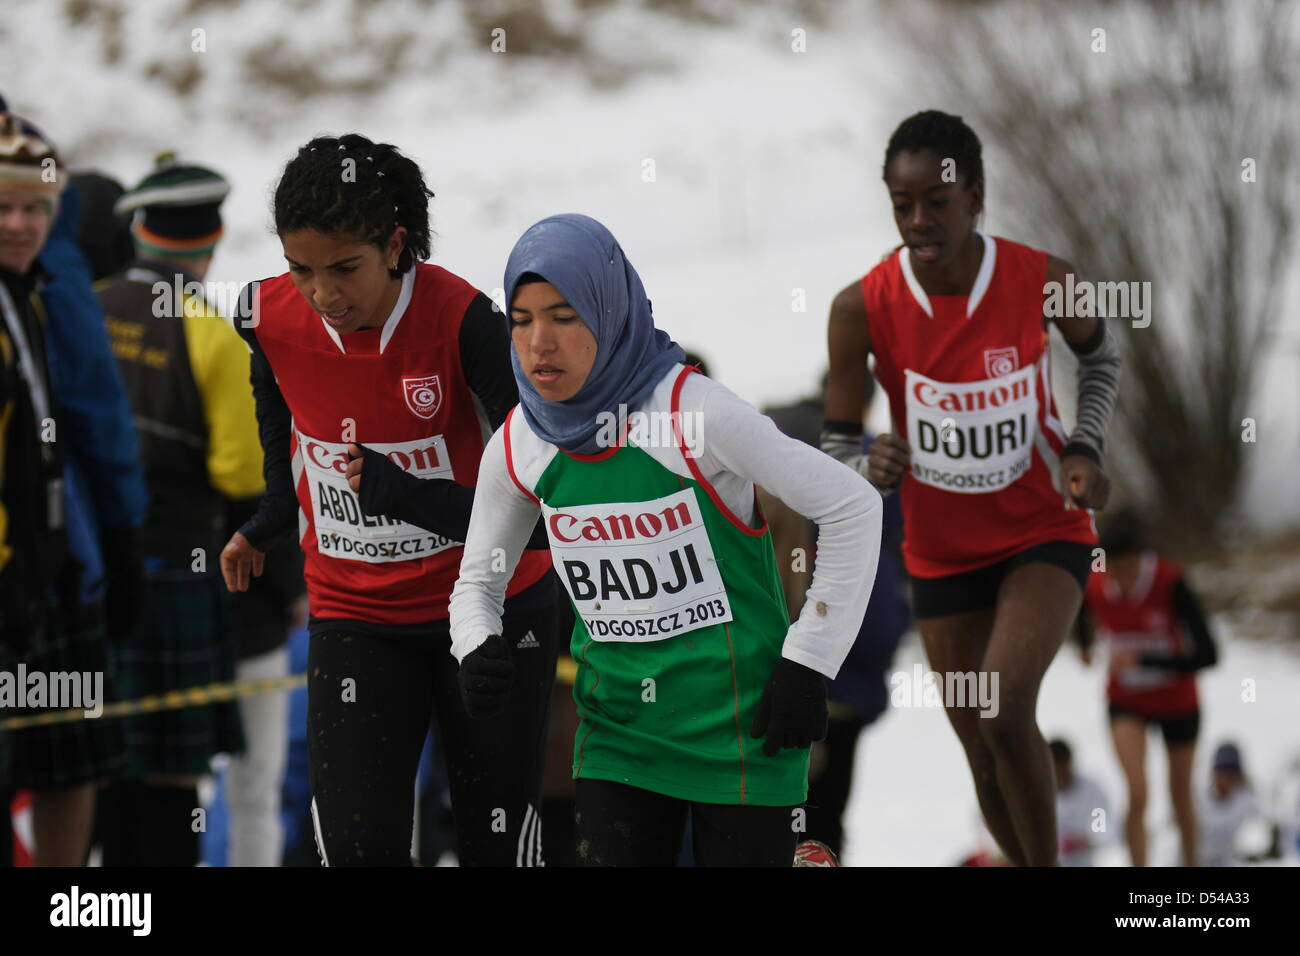 Bydgoszcz, Poland 24th, March 2013 IAAF World Cross Country Chamiponships. Junior Race Woman. Pictured: Laila Badji - Stock Image